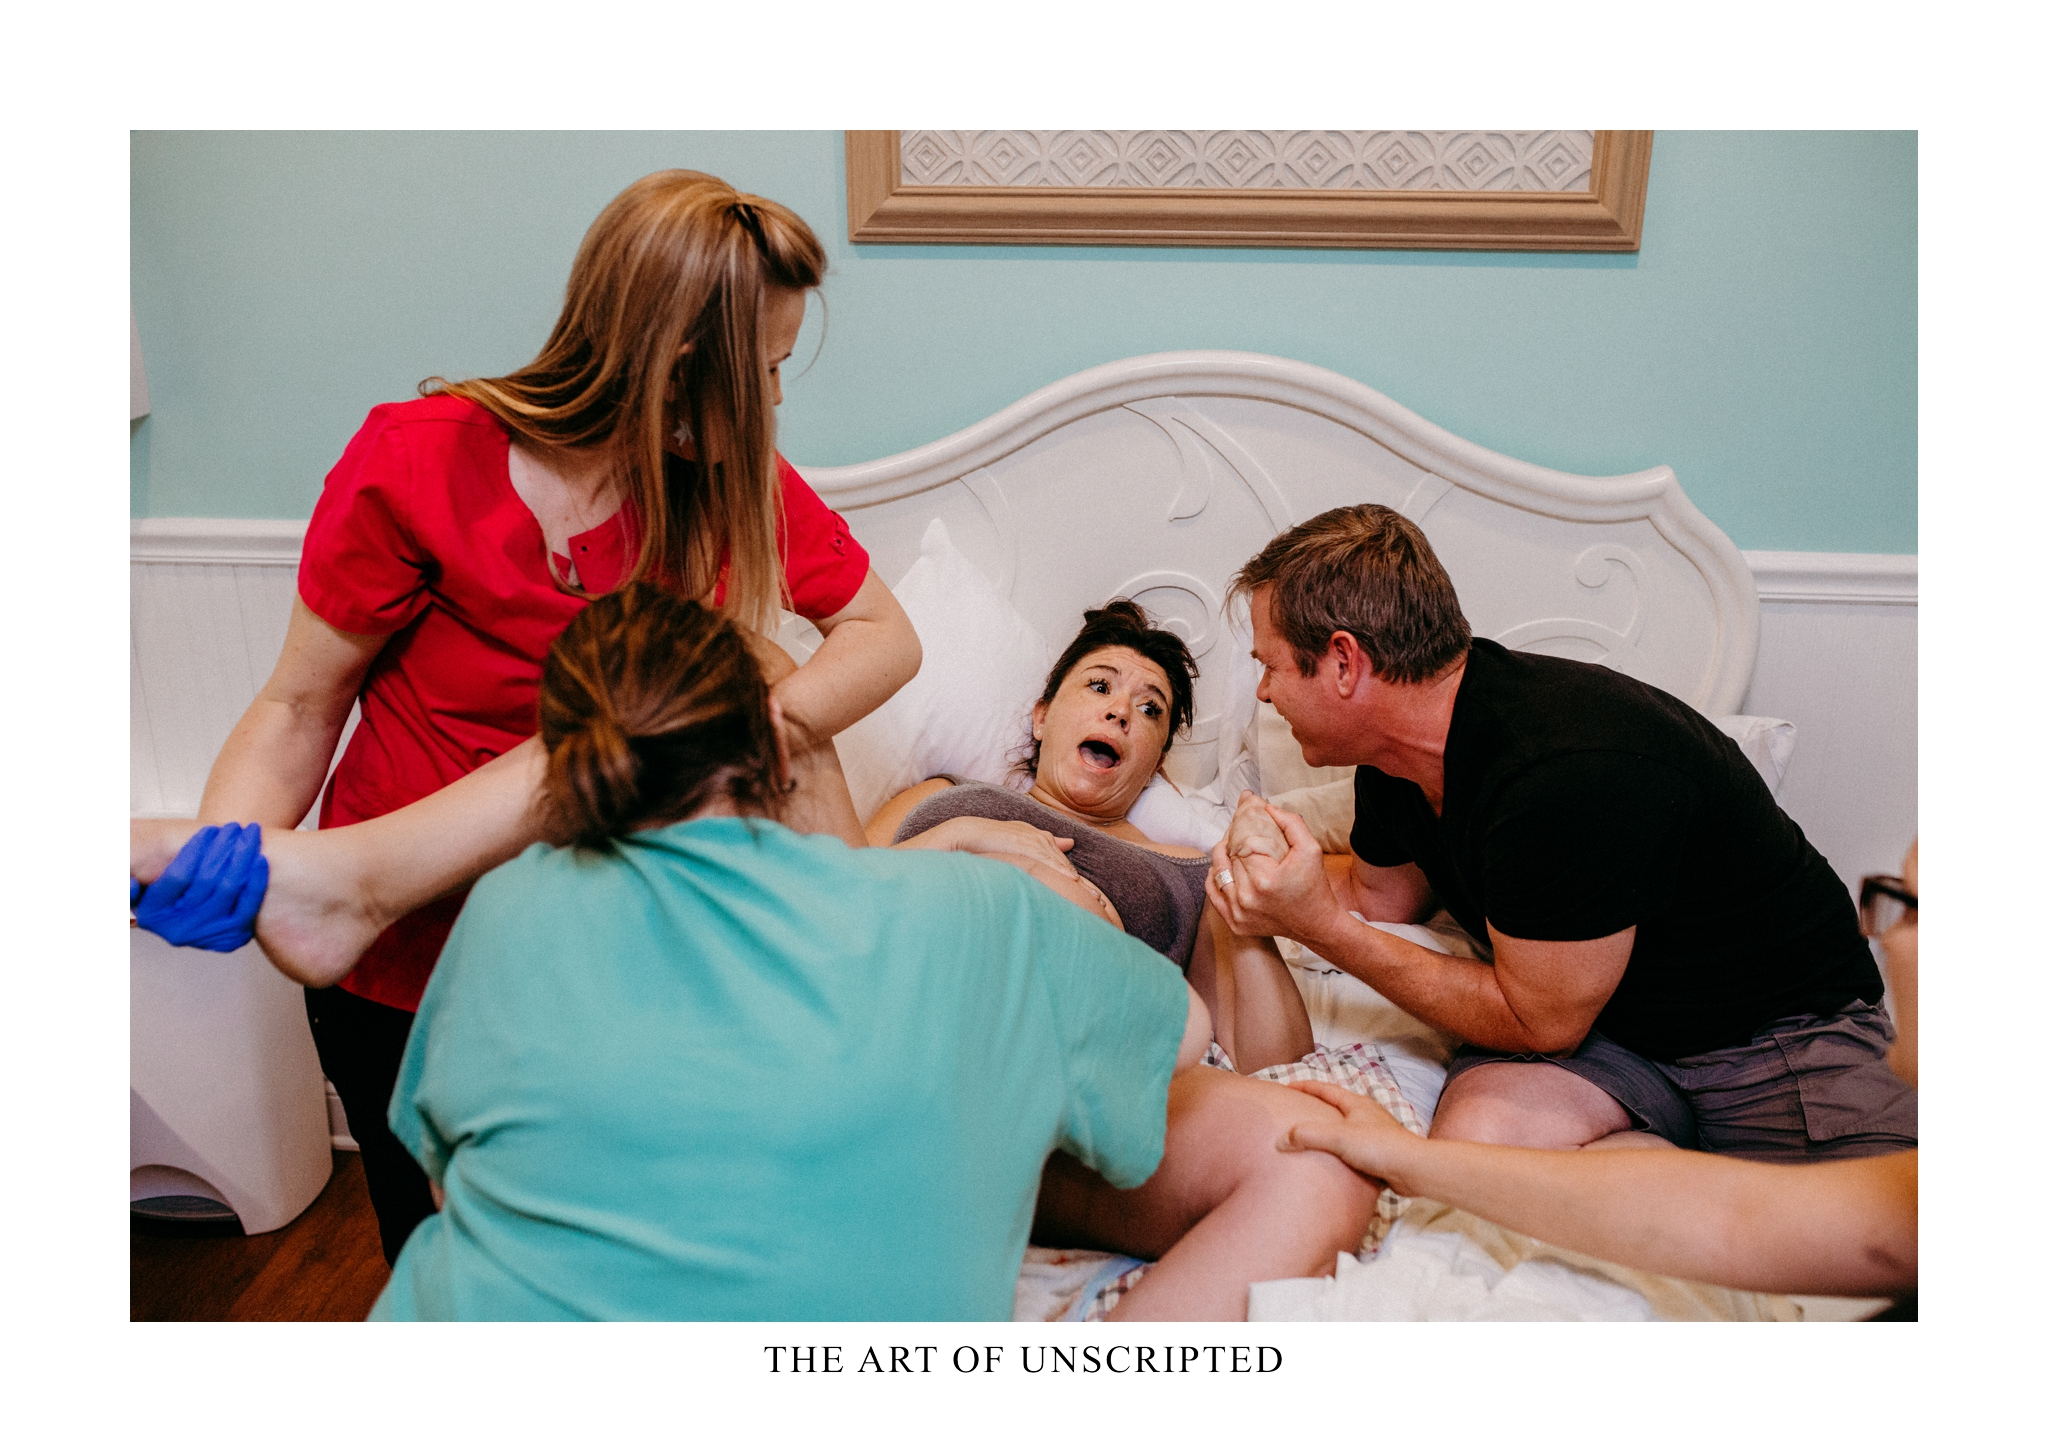 2017-06-11_001408__THE ART OF UNSCRIPTED_SPRINGFIELD MO_BIRTH PHOTOGRAPHER_ DOCUMENTARY_STORYTELLING_417_PHOTOGRAPHER